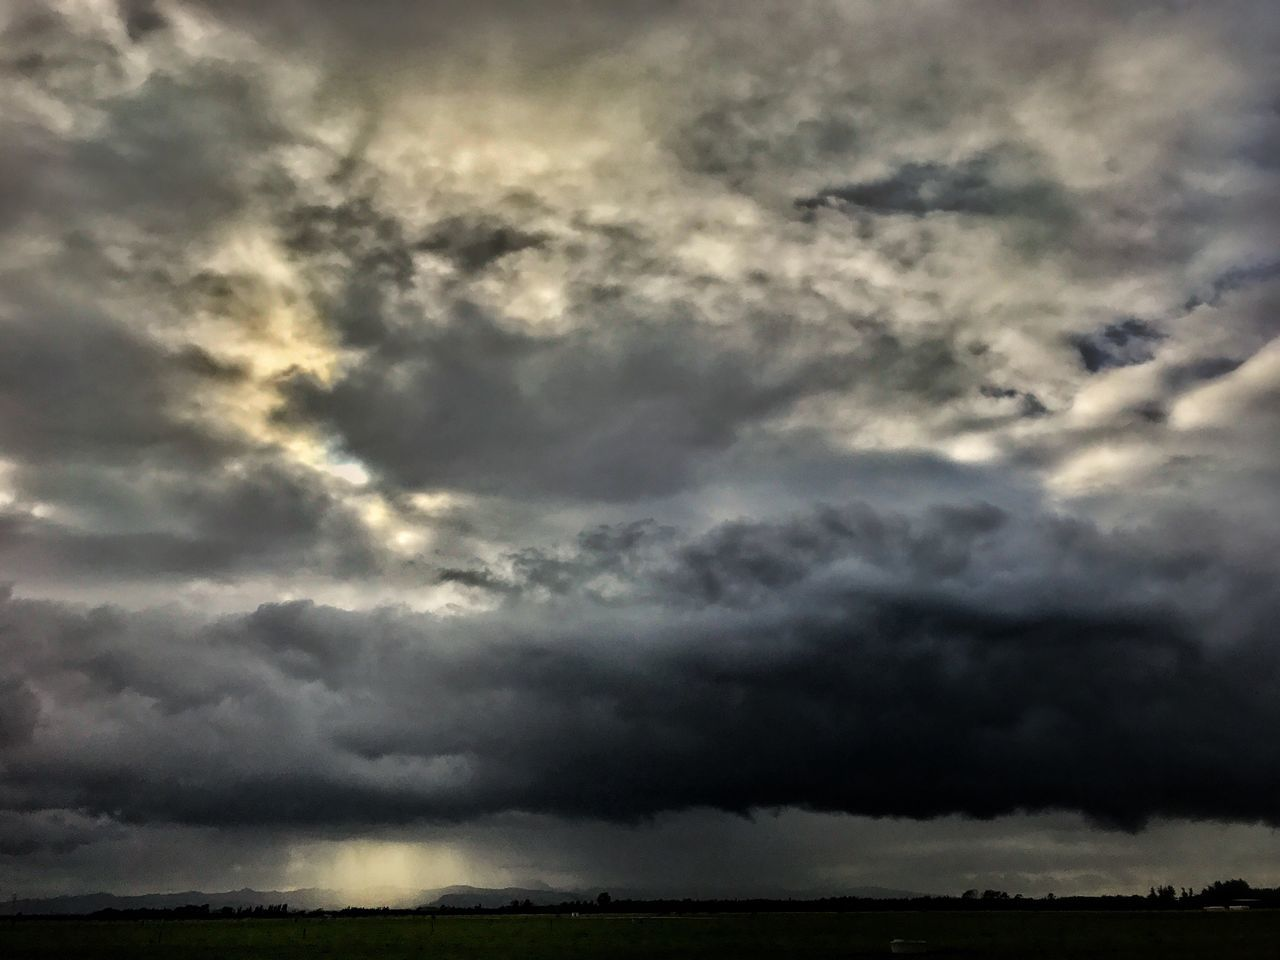 cloud - sky, sky, weather, nature, storm cloud, beauty in nature, scenics, dramatic sky, atmospheric mood, cloudscape, no people, tranquil scene, outdoors, tranquility, storm, landscape, day, thunderstorm